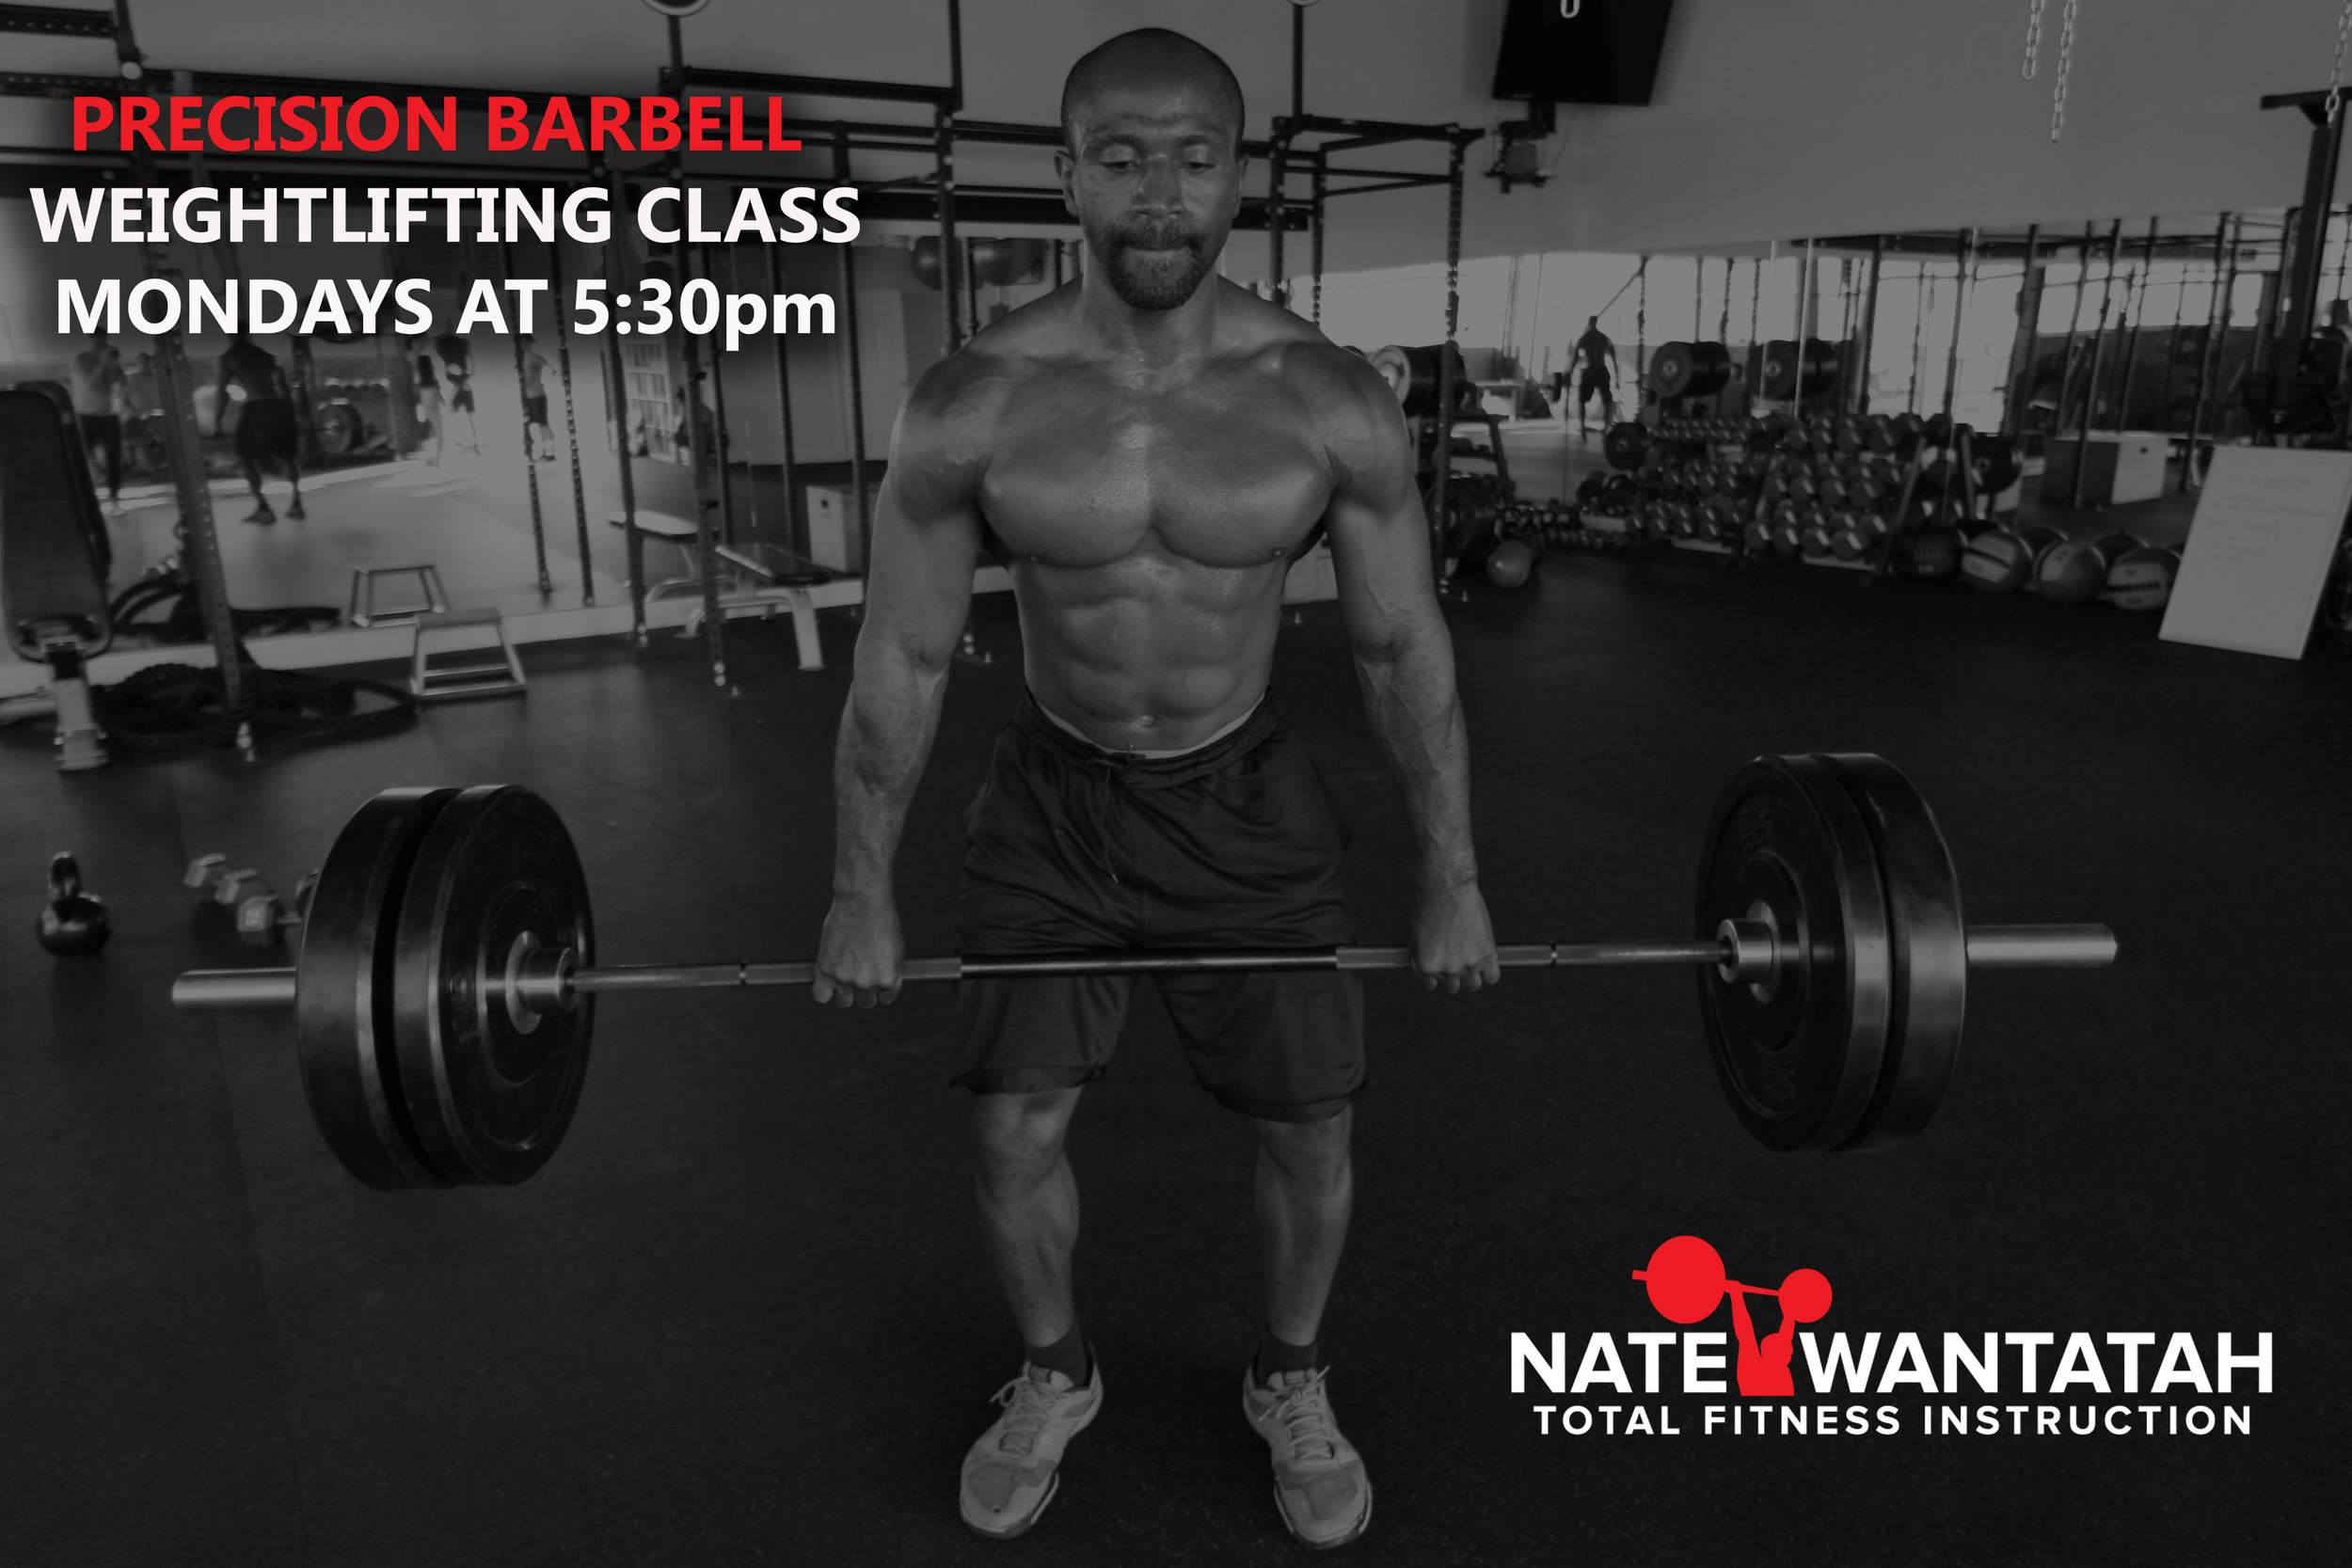 Nate Wantatah Weight Lifiting Personal Trainer